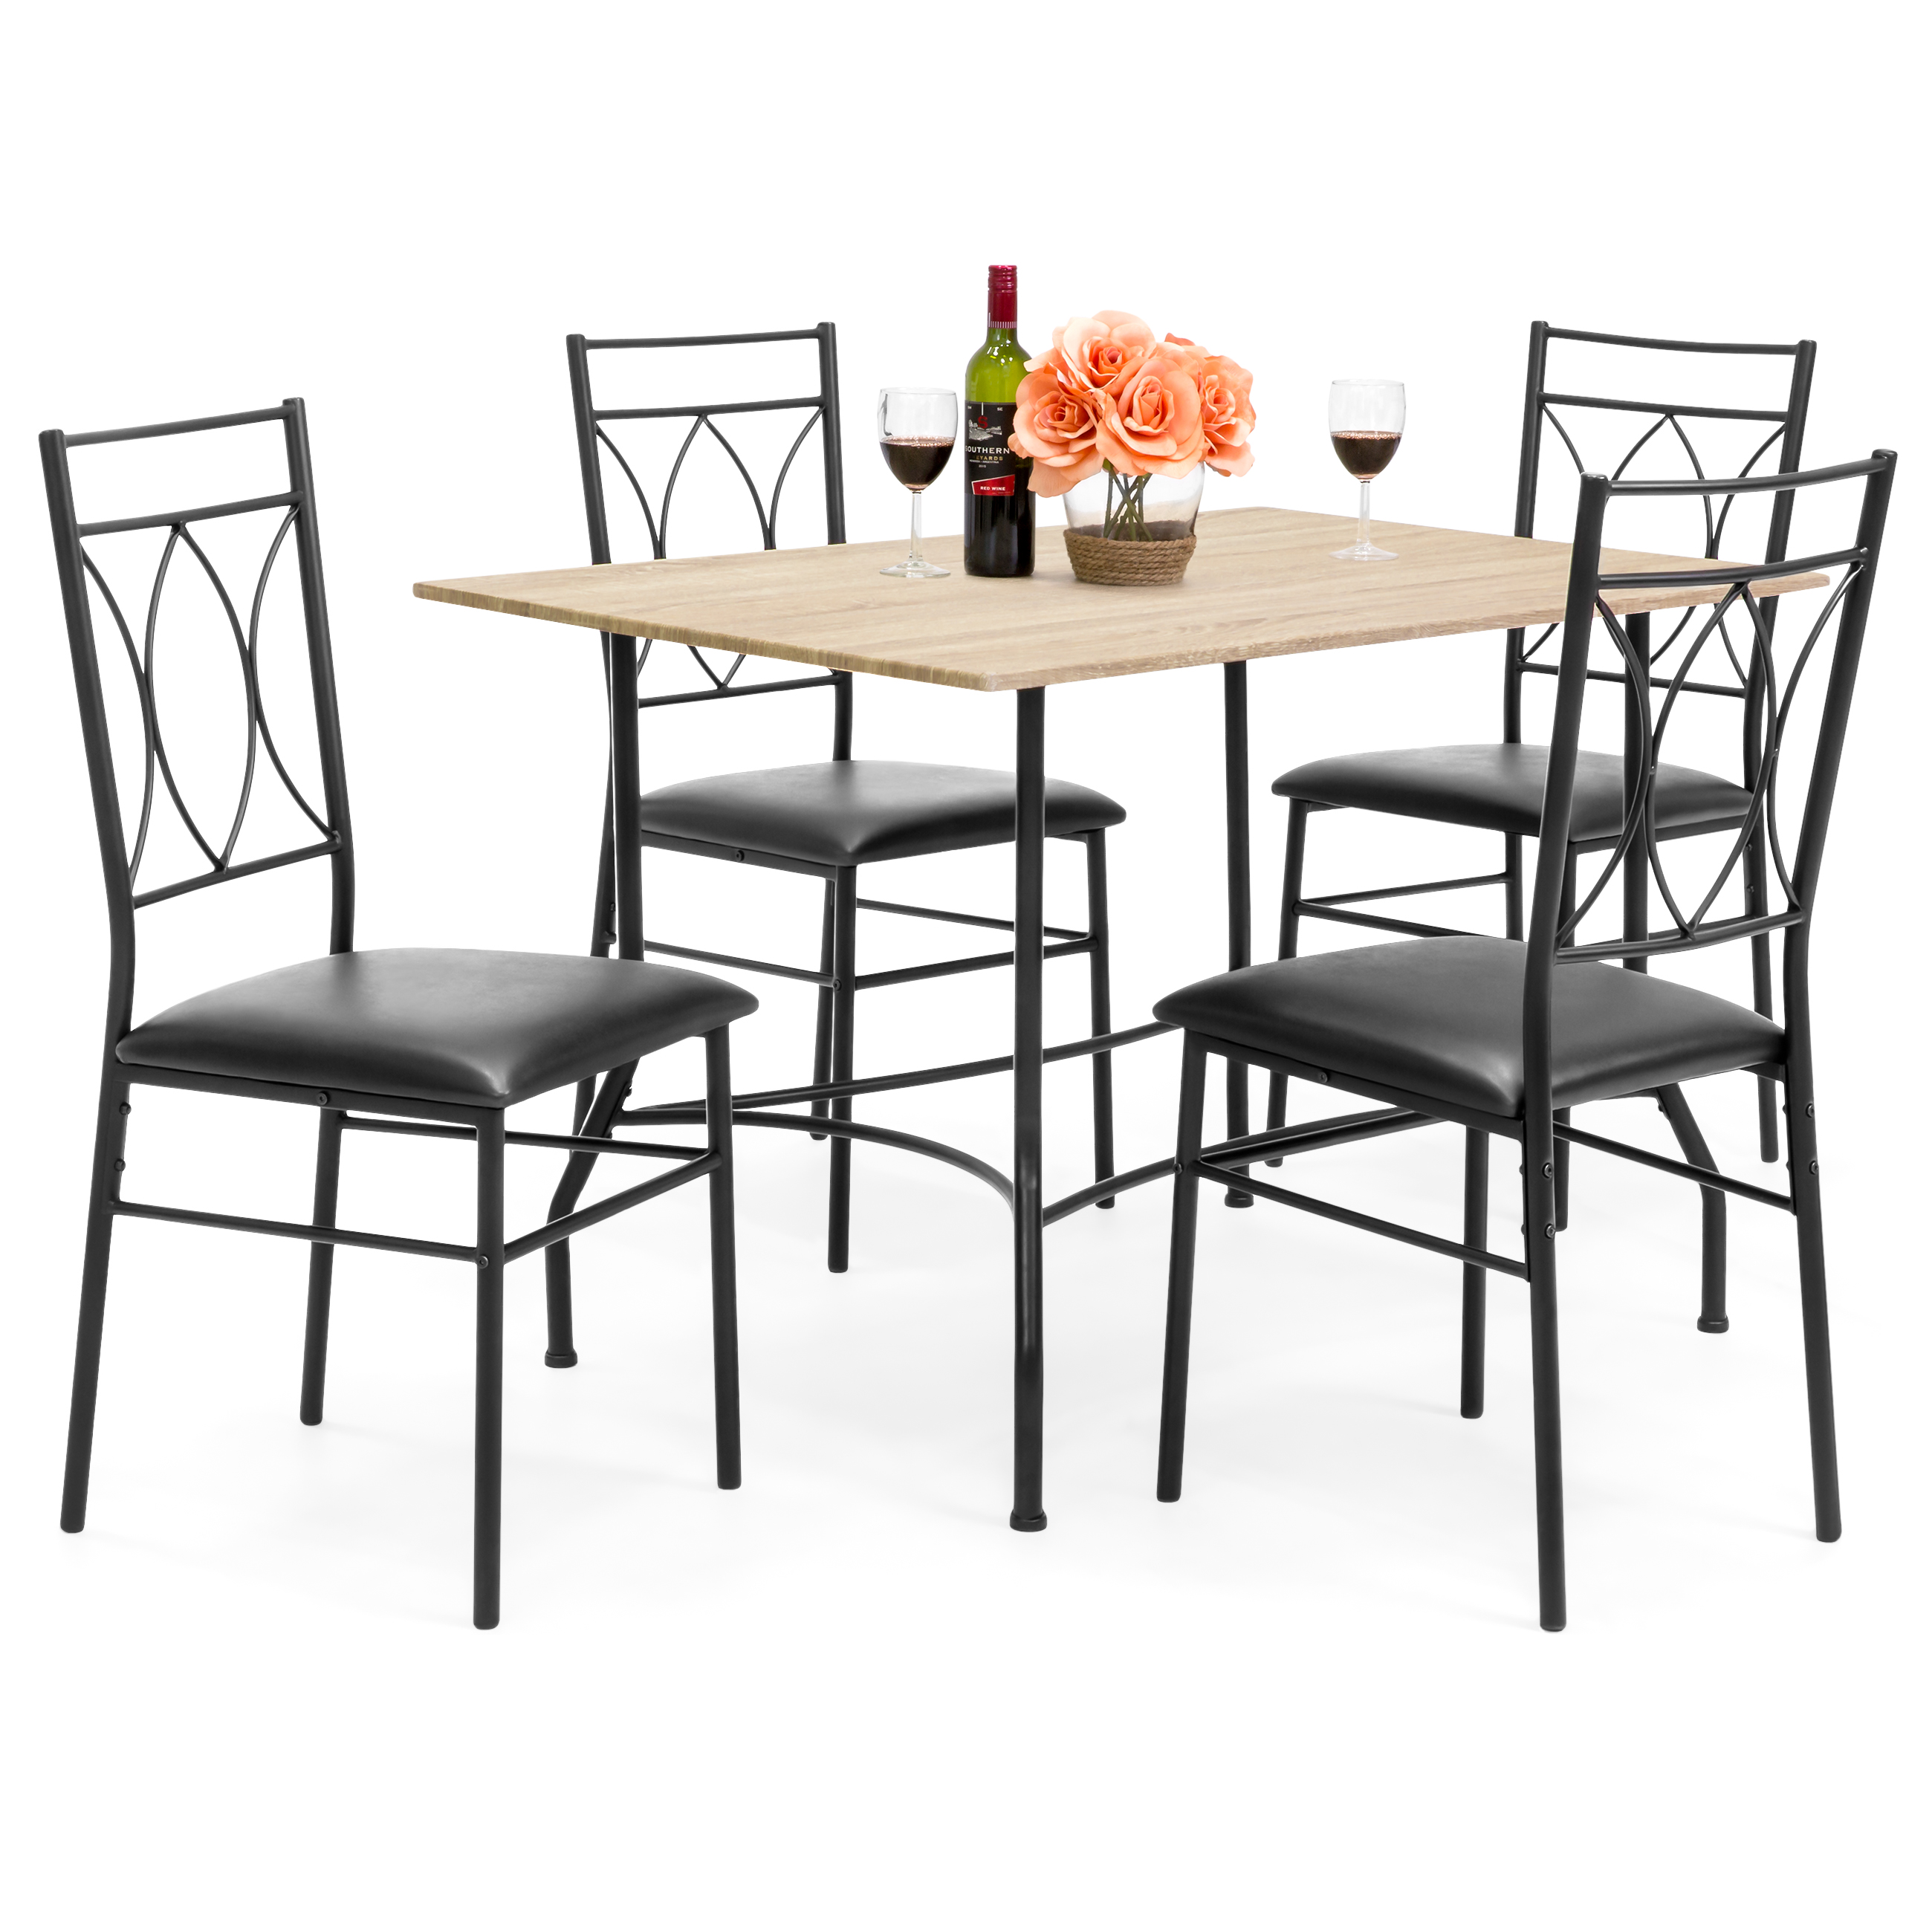 Best Choice Products 5-Piece Dining Room Set w  Wood Table, Metal Chairs, Faux Leather Seats Black by Best Choice Products